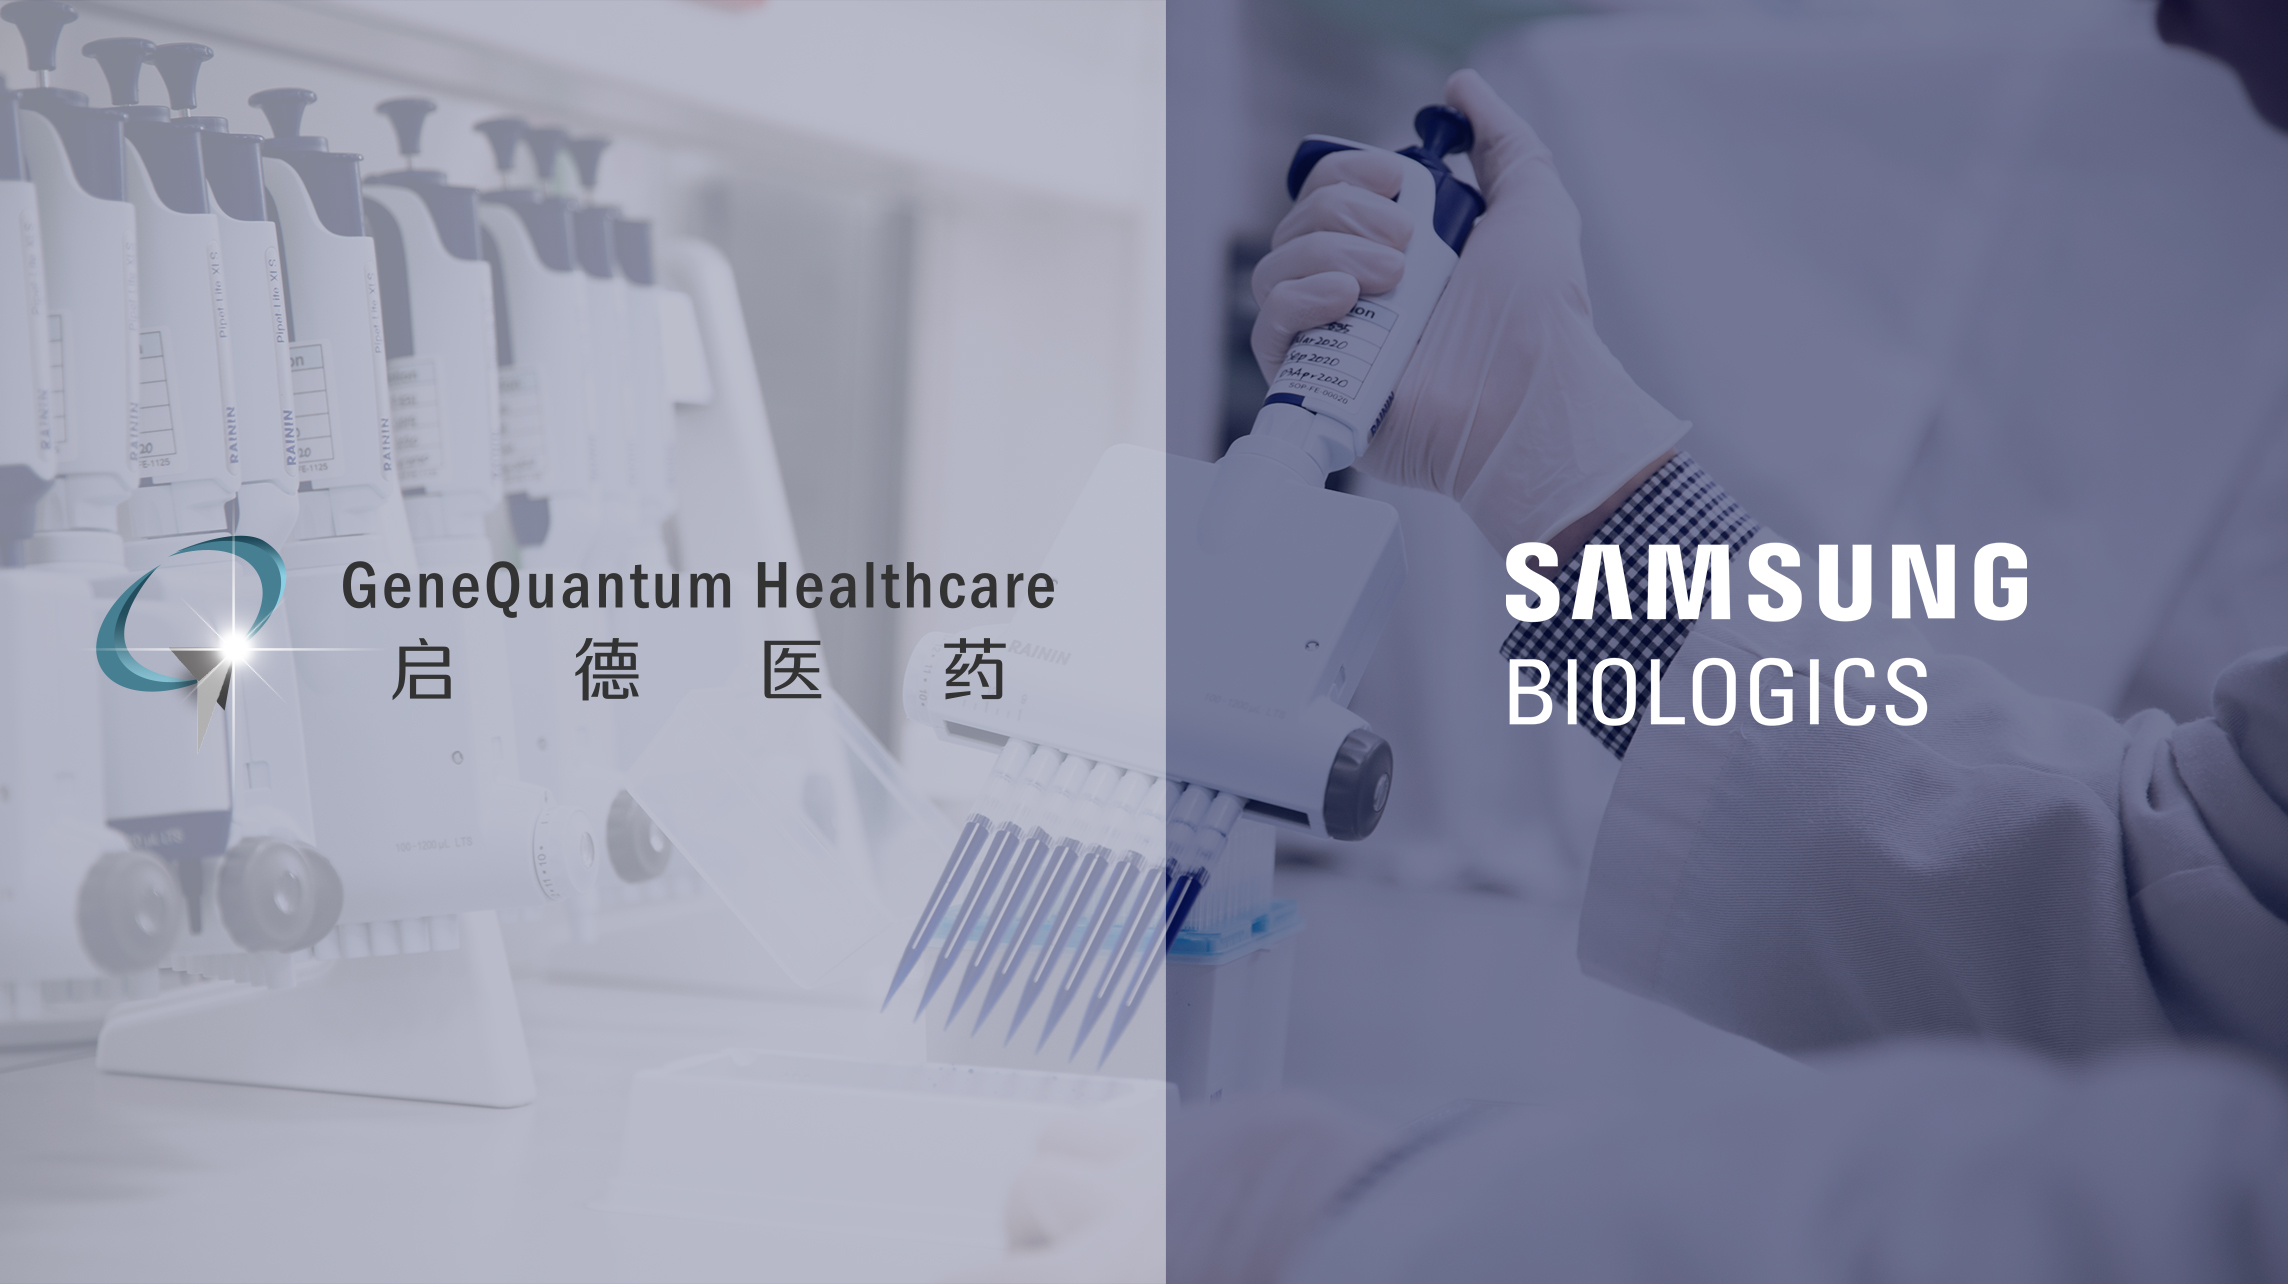 Samsung Biologics announces partnership with GeneQuantum Healthcare